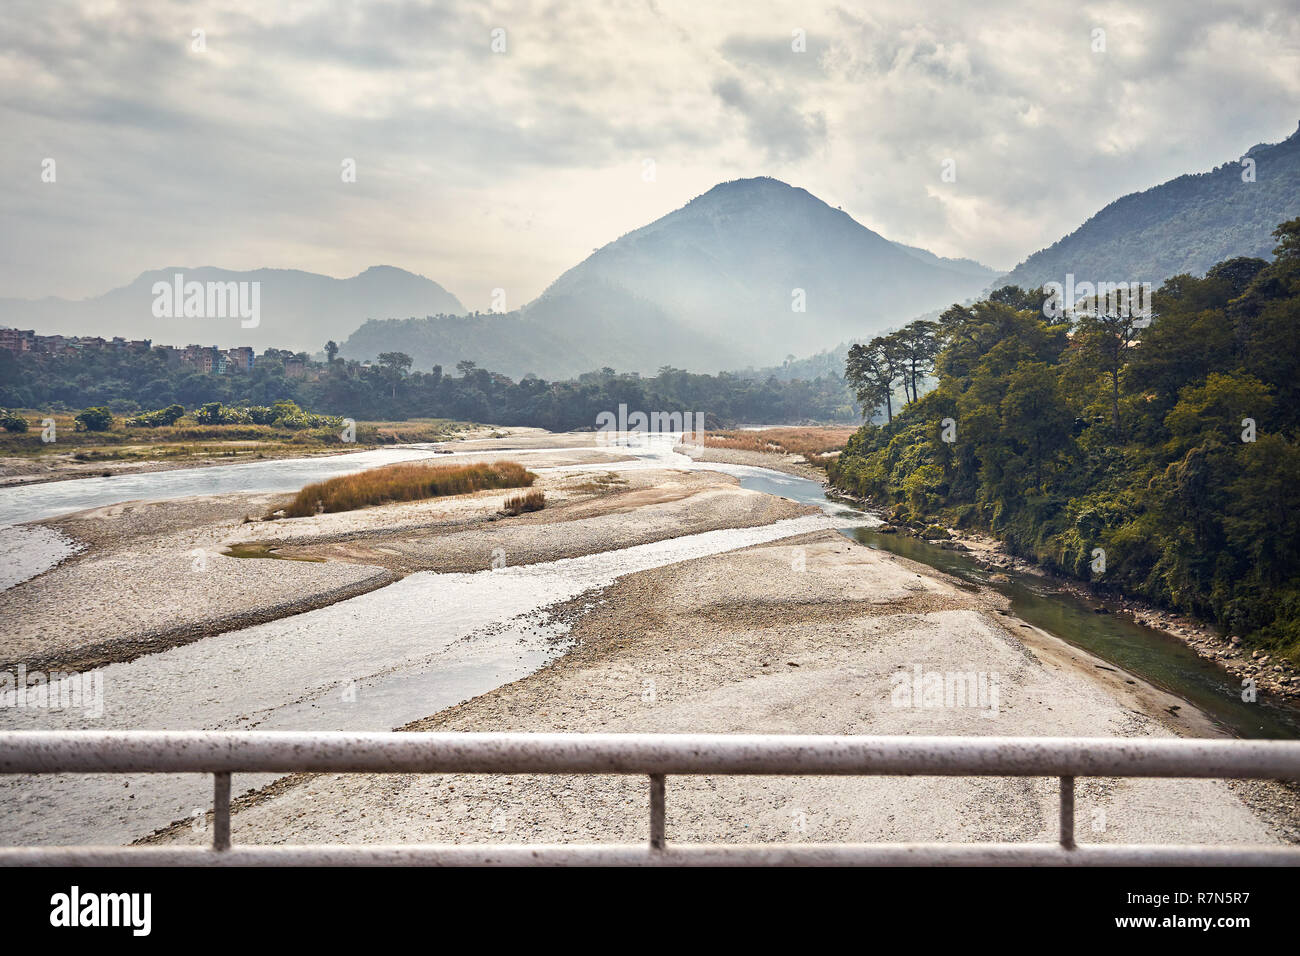 Foggy Mountains and river at Himalayas near Pokhara in Nepal - Stock Image